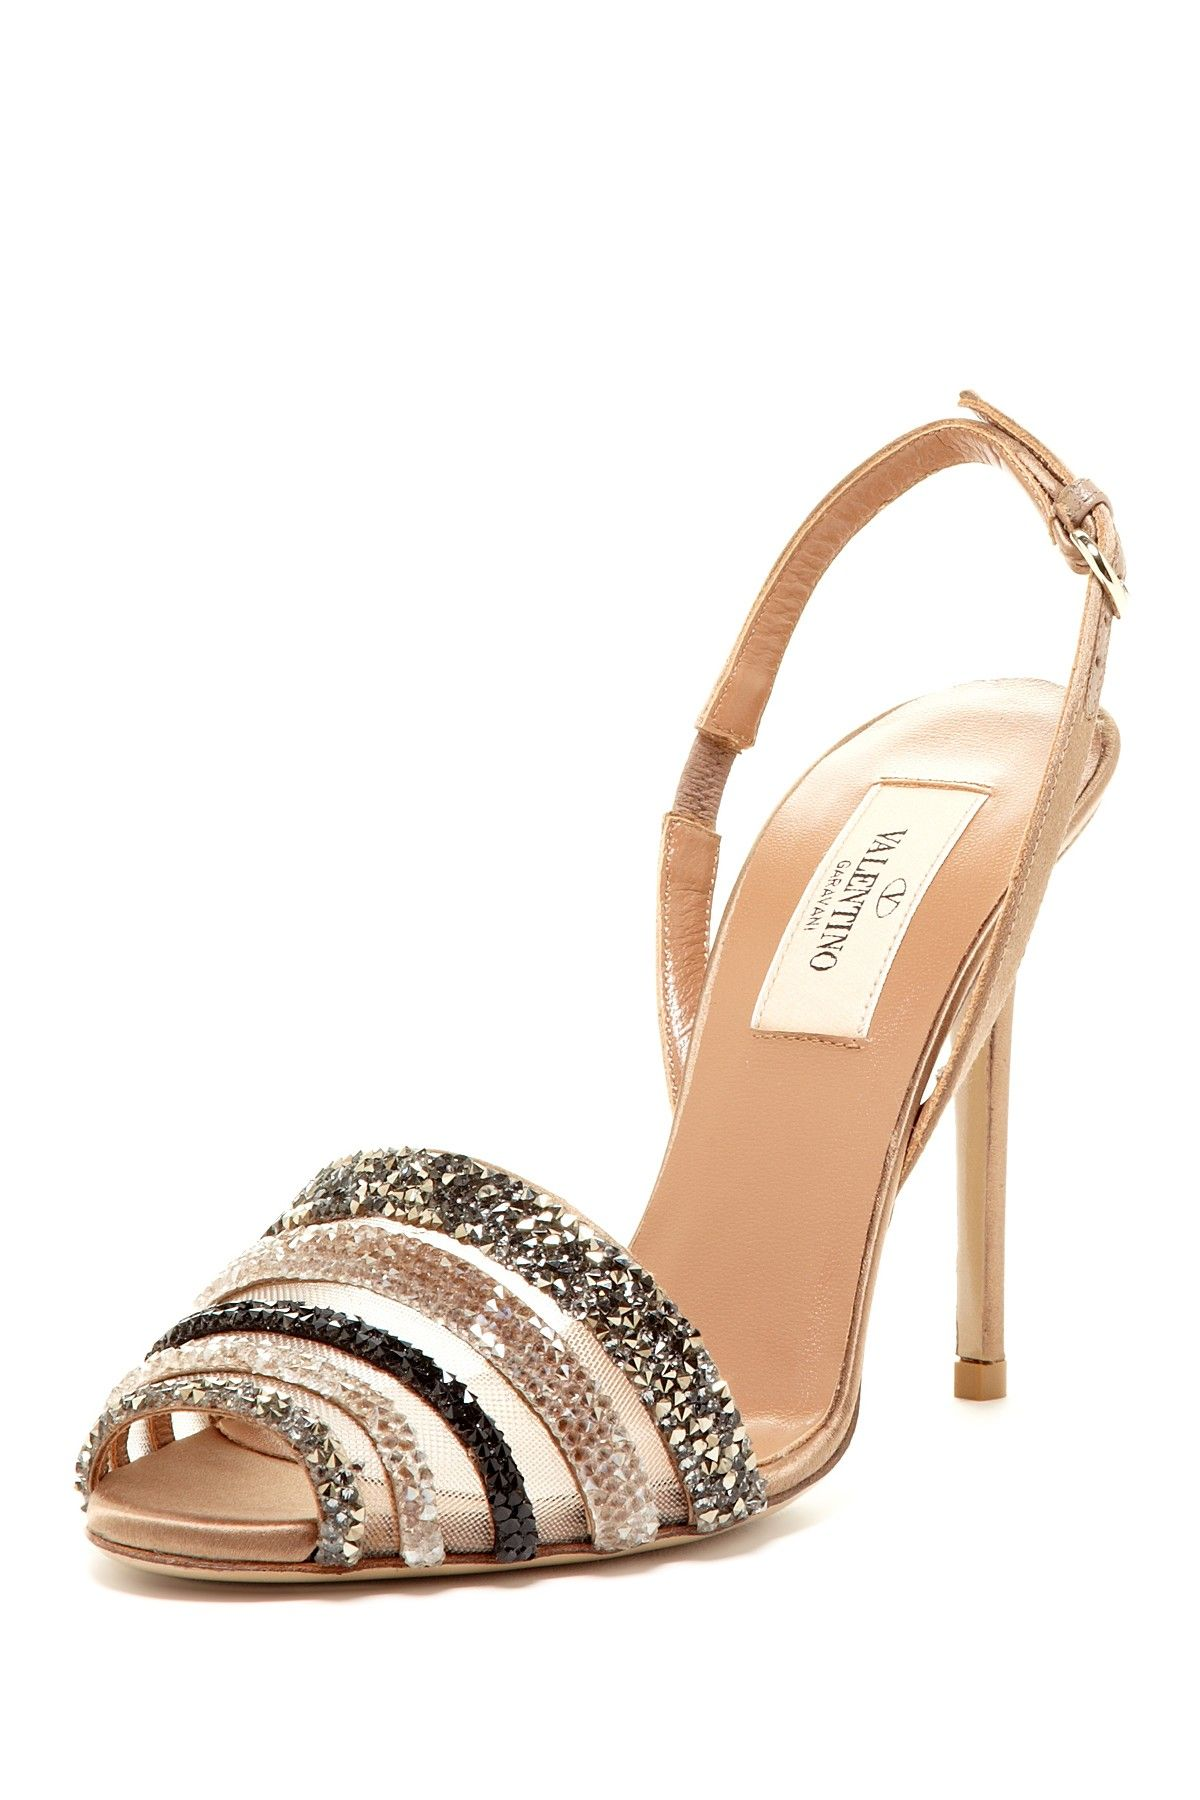 clearance outlet outlet order online Valentino Embellished Mesh Sandals best store to get for sale outlet limited edition free shipping ebay BJigwp8N